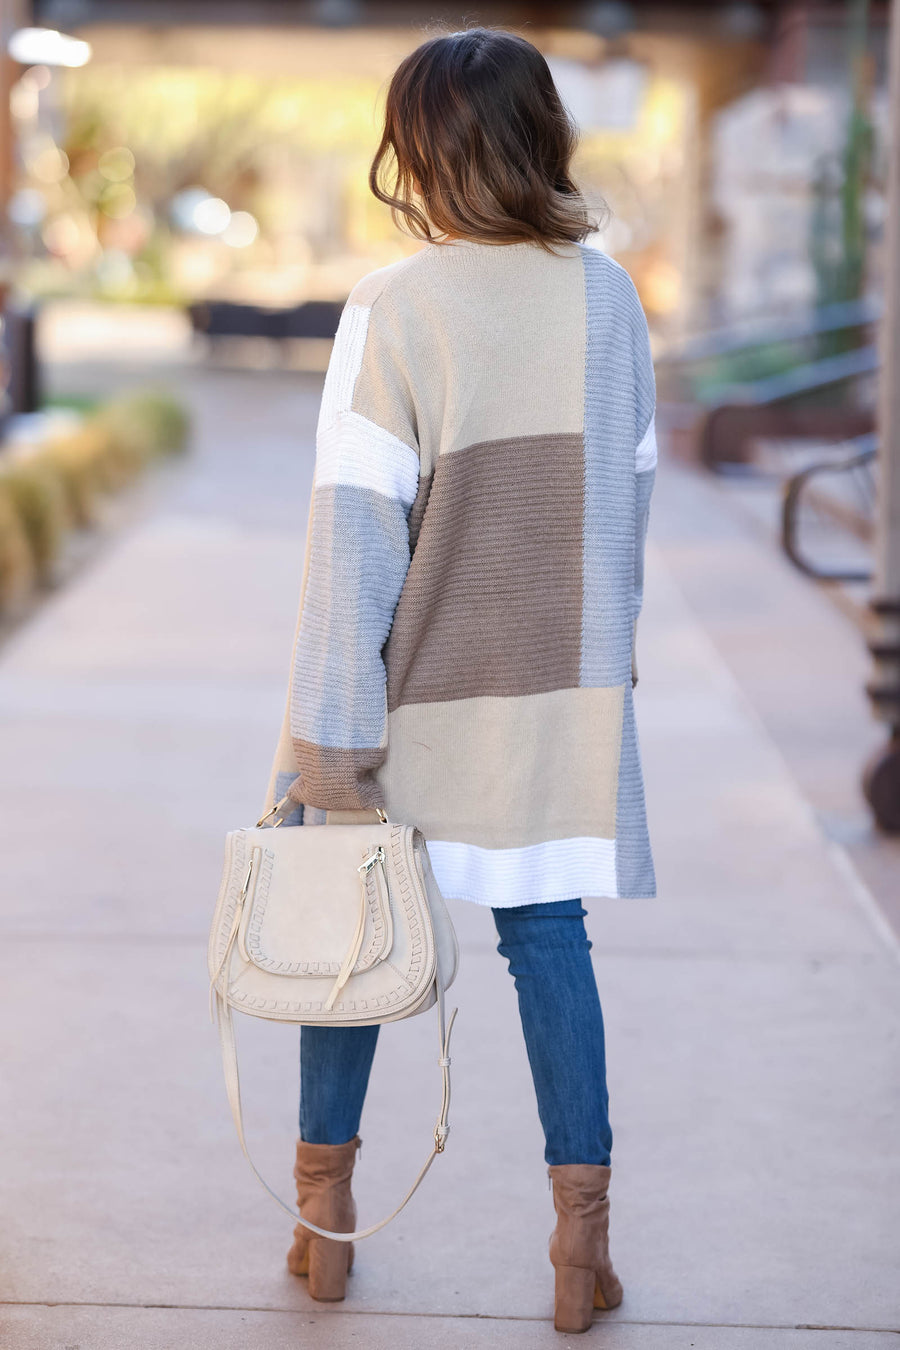 Lasting Impression Color Block Cardigan - Taupe closet candy 1